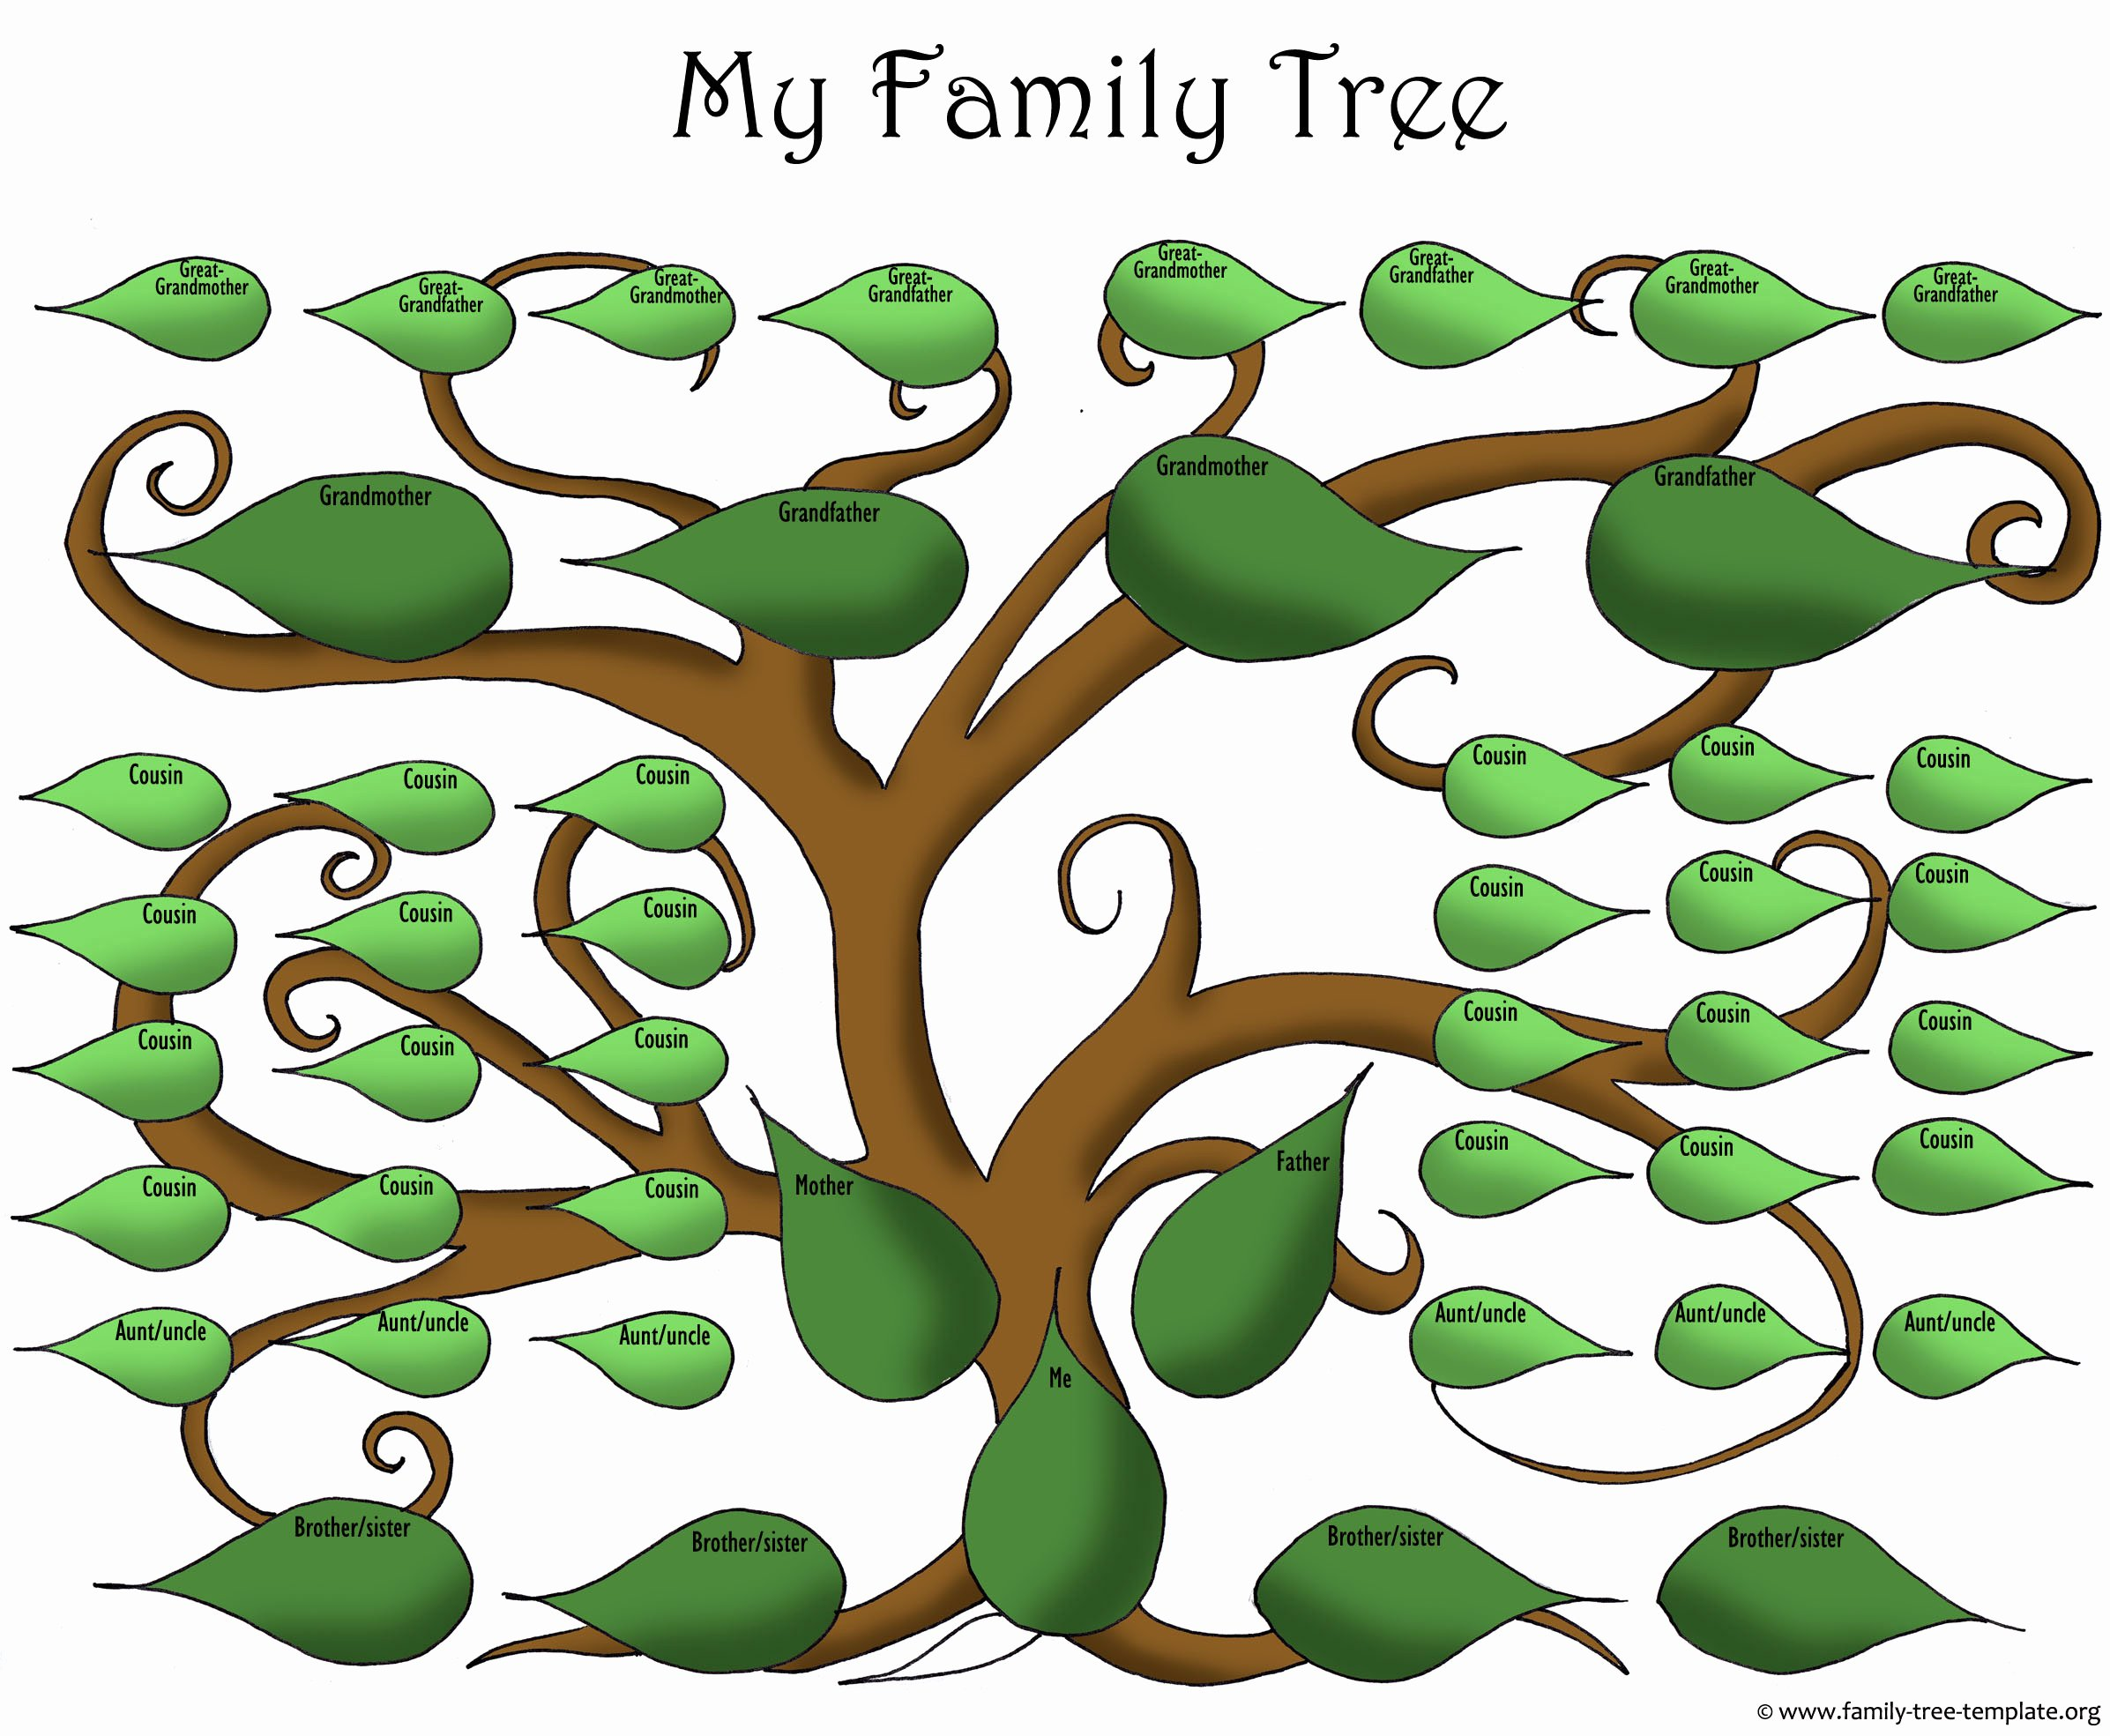 Large Family Tree Templates Unique A Printable Blank Family Tree to Make Your Kids Genealogy